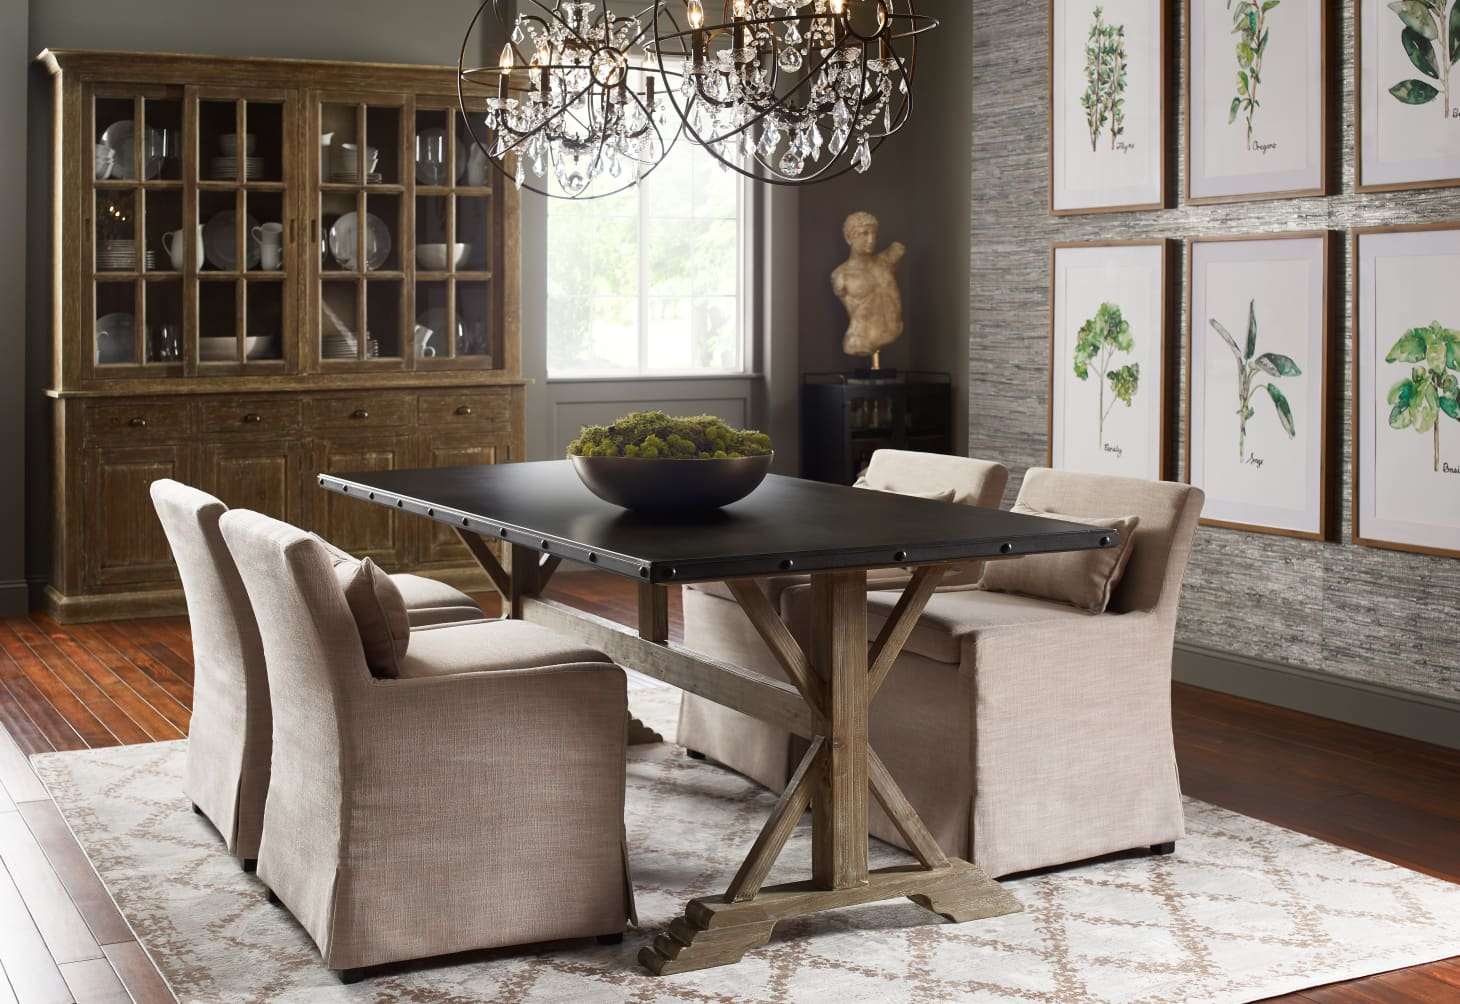 Act Fast Wayfair S Restoration Hardware Style Line Is On Sale For